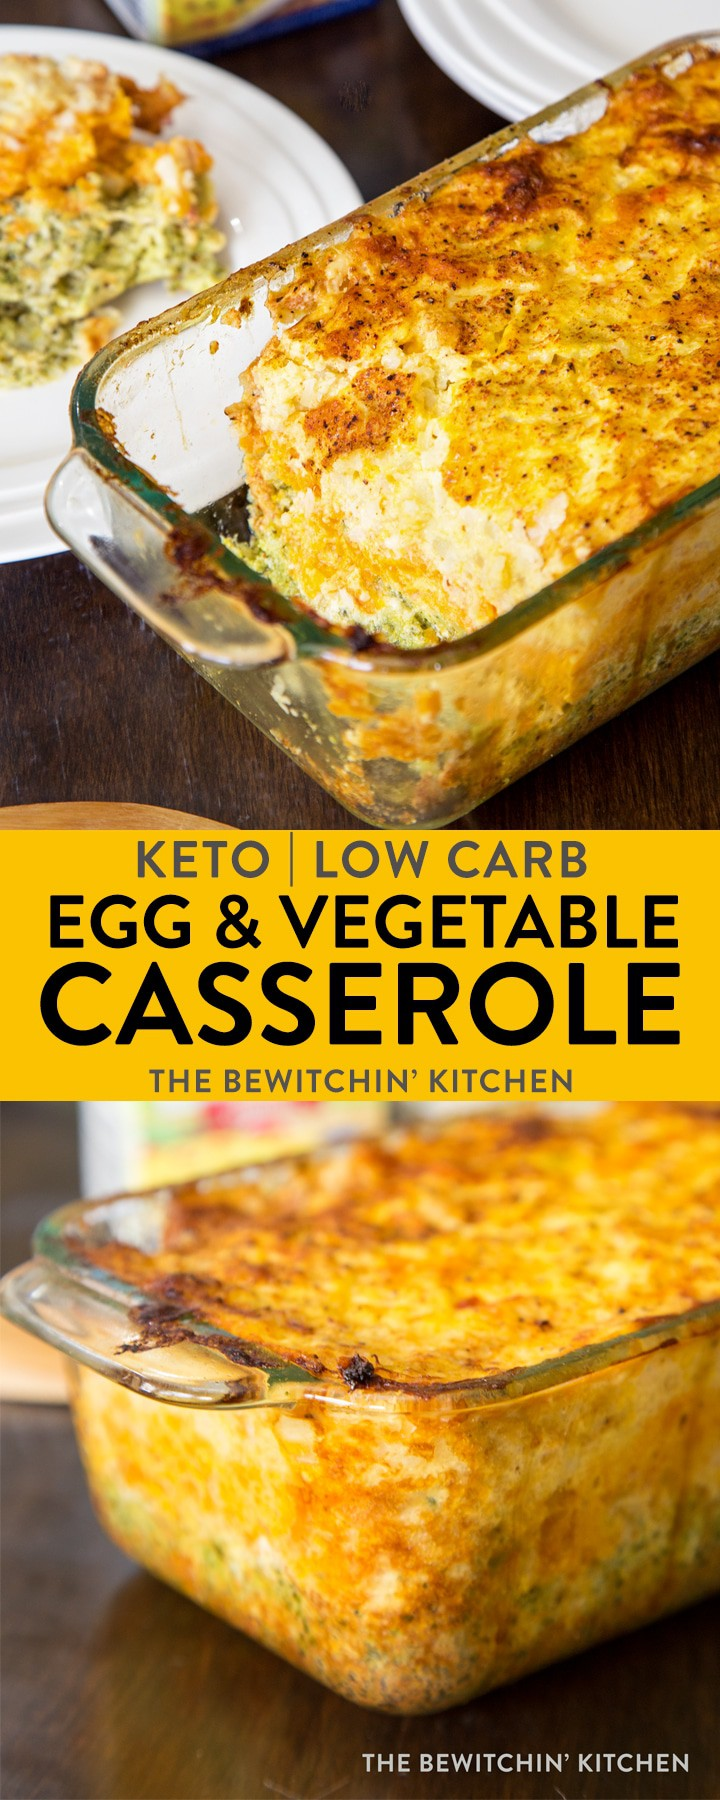 Ketogenic Egg Vegetable Casserole - this keto breakfast recipe is a low carb favorite in my family. This makes a perfect side dish for brunch and has minimal ingredients. I love the cheesy vegetable mix! #ketorecipes #ketobrunch #ketobreakfast #thebewitchinkitchen